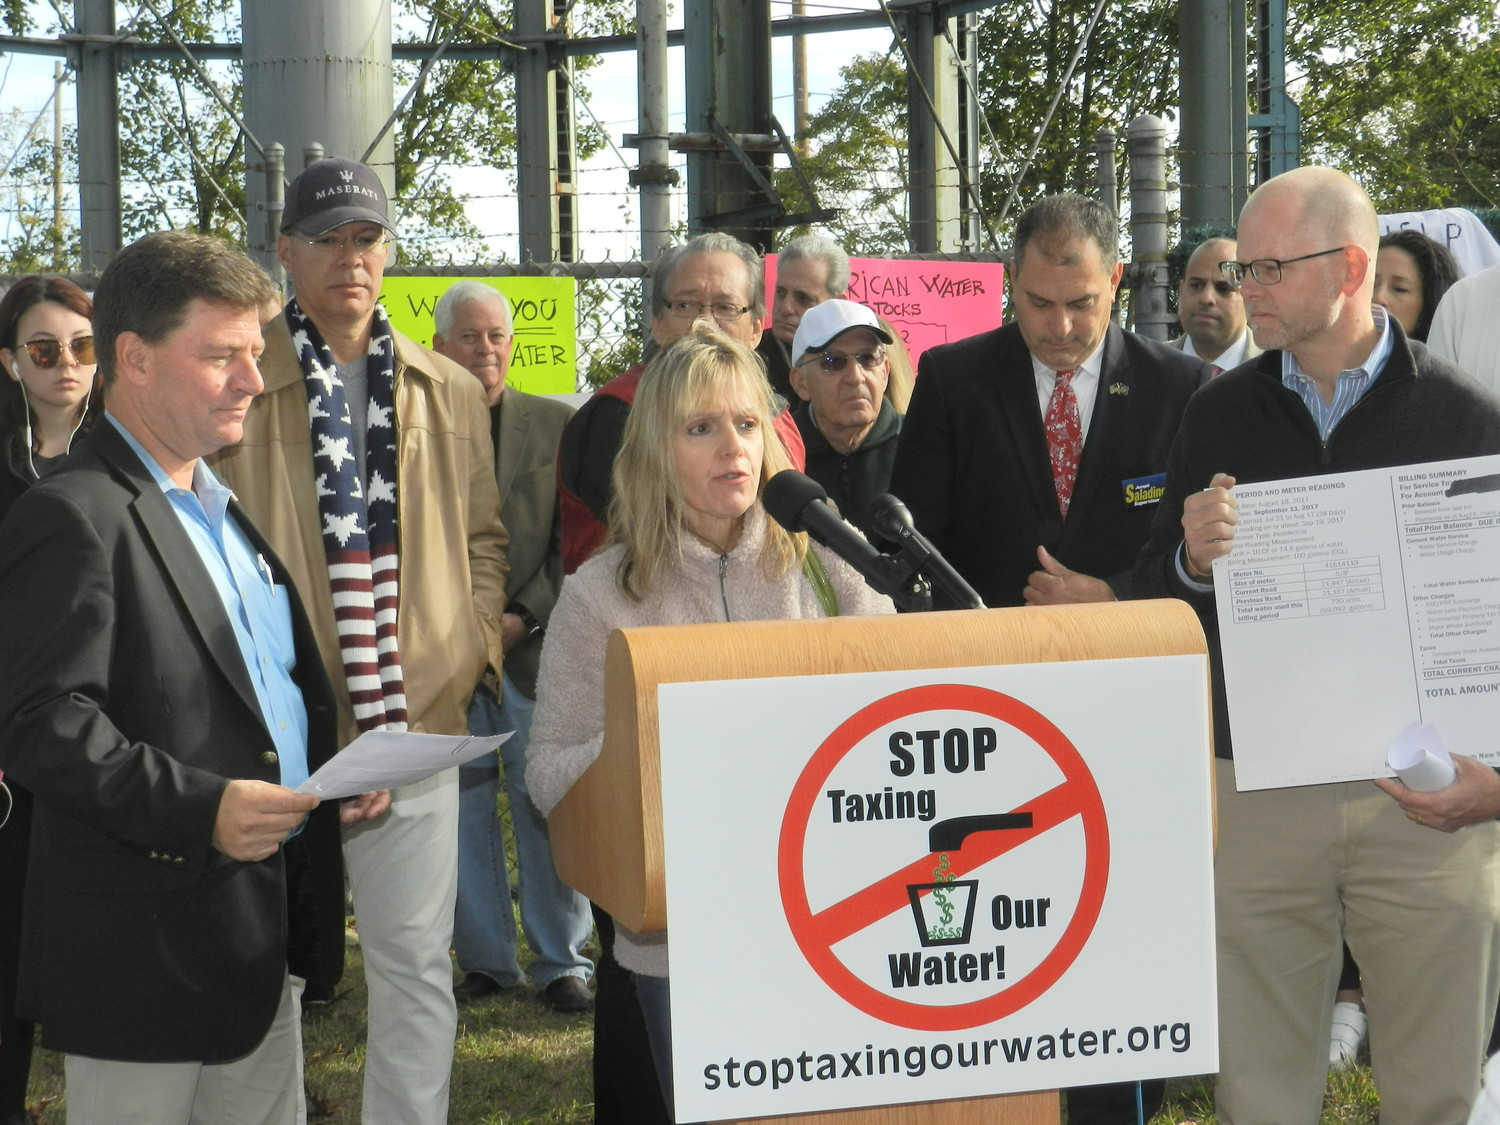 Community activist Agatha Nadel spoke at a water rally in November calling for state condemnation of NYAW.